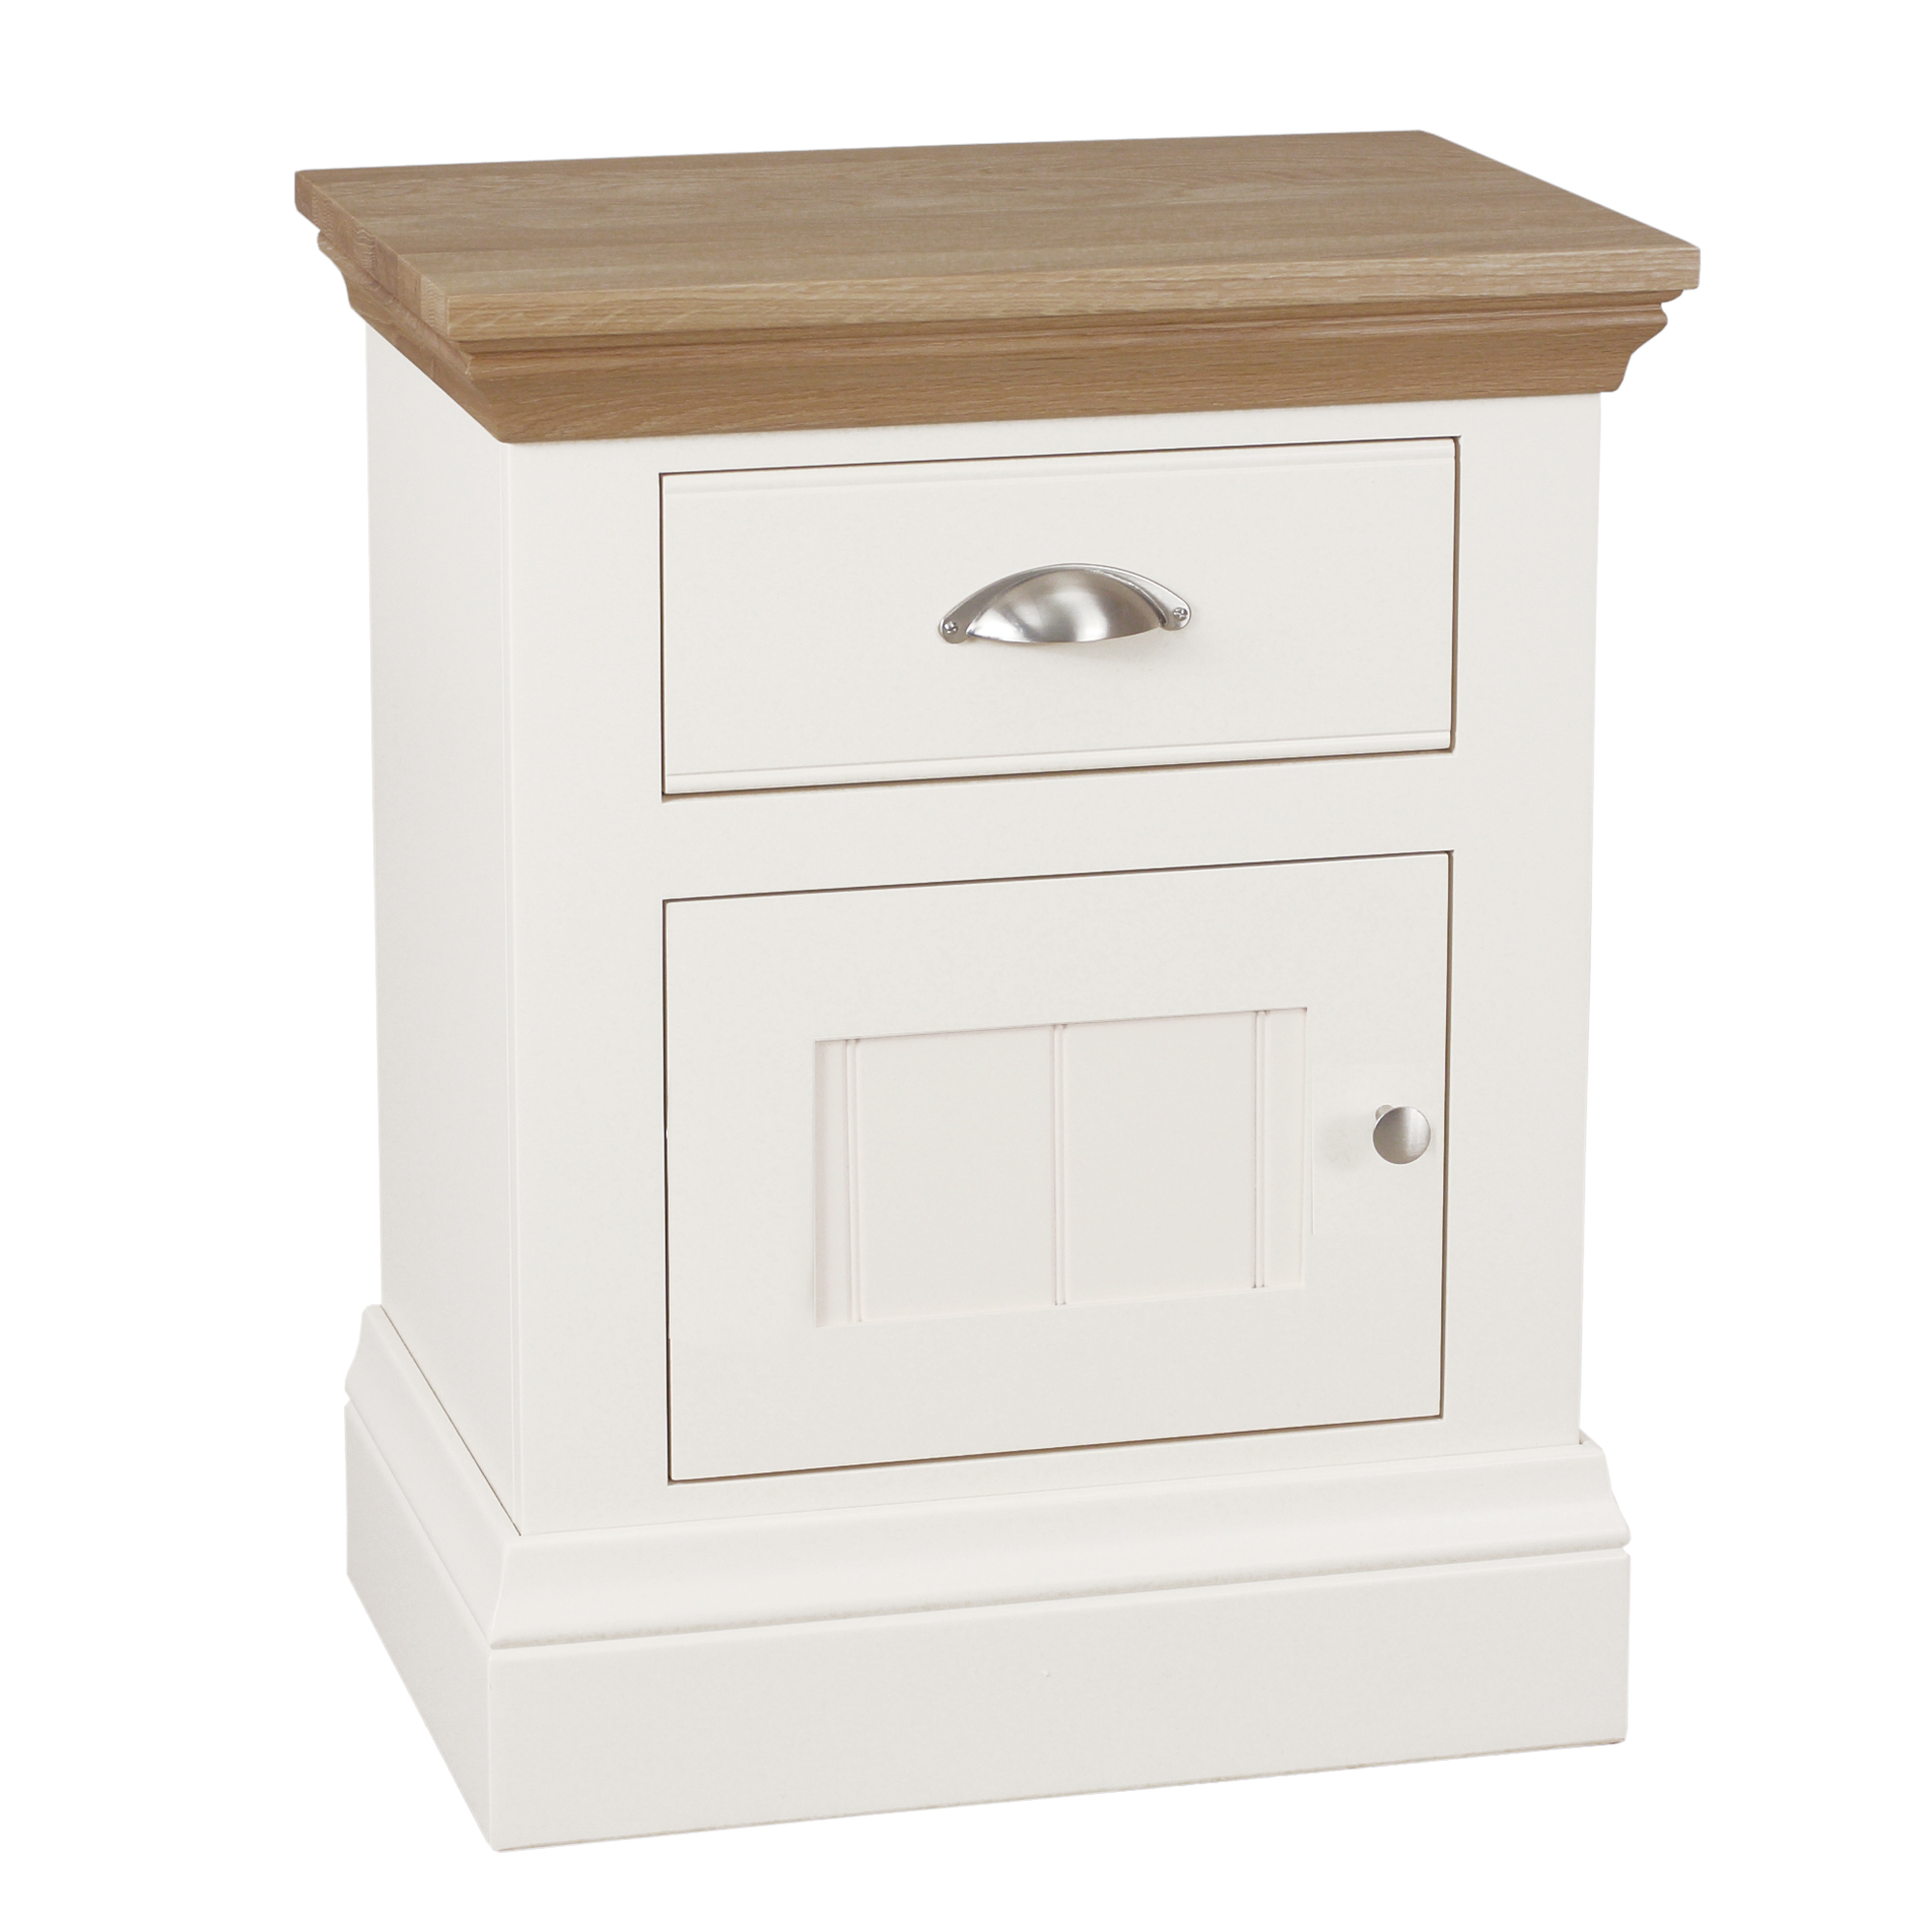 Isla Small 1 Door and Drawer Bedside